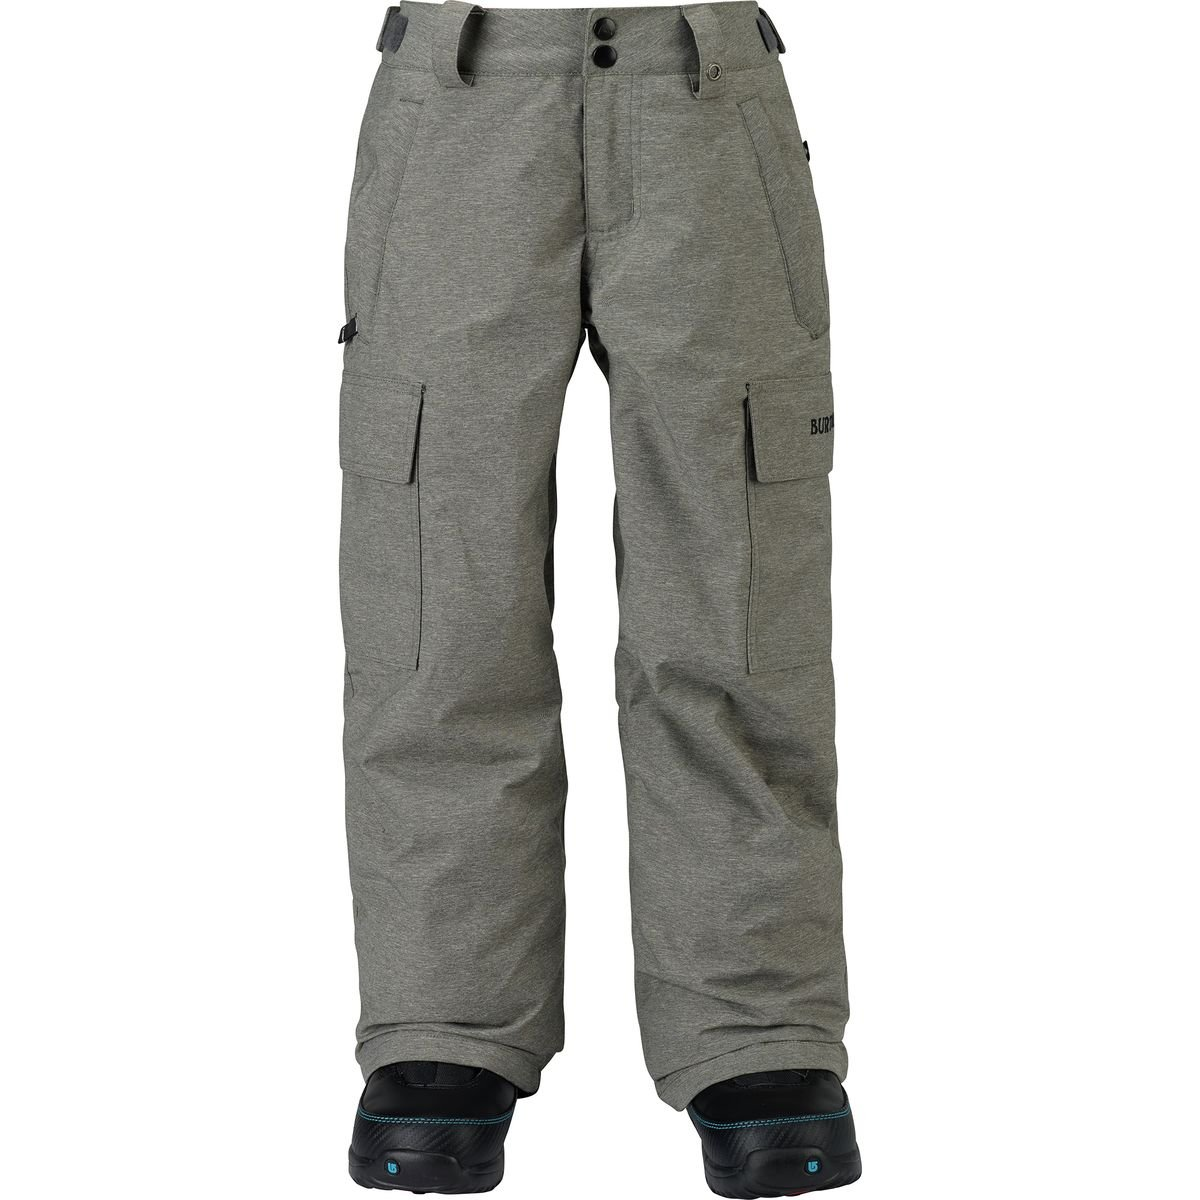 Burton Boys Exile Cargo Pants, Heathers, Large by Burton